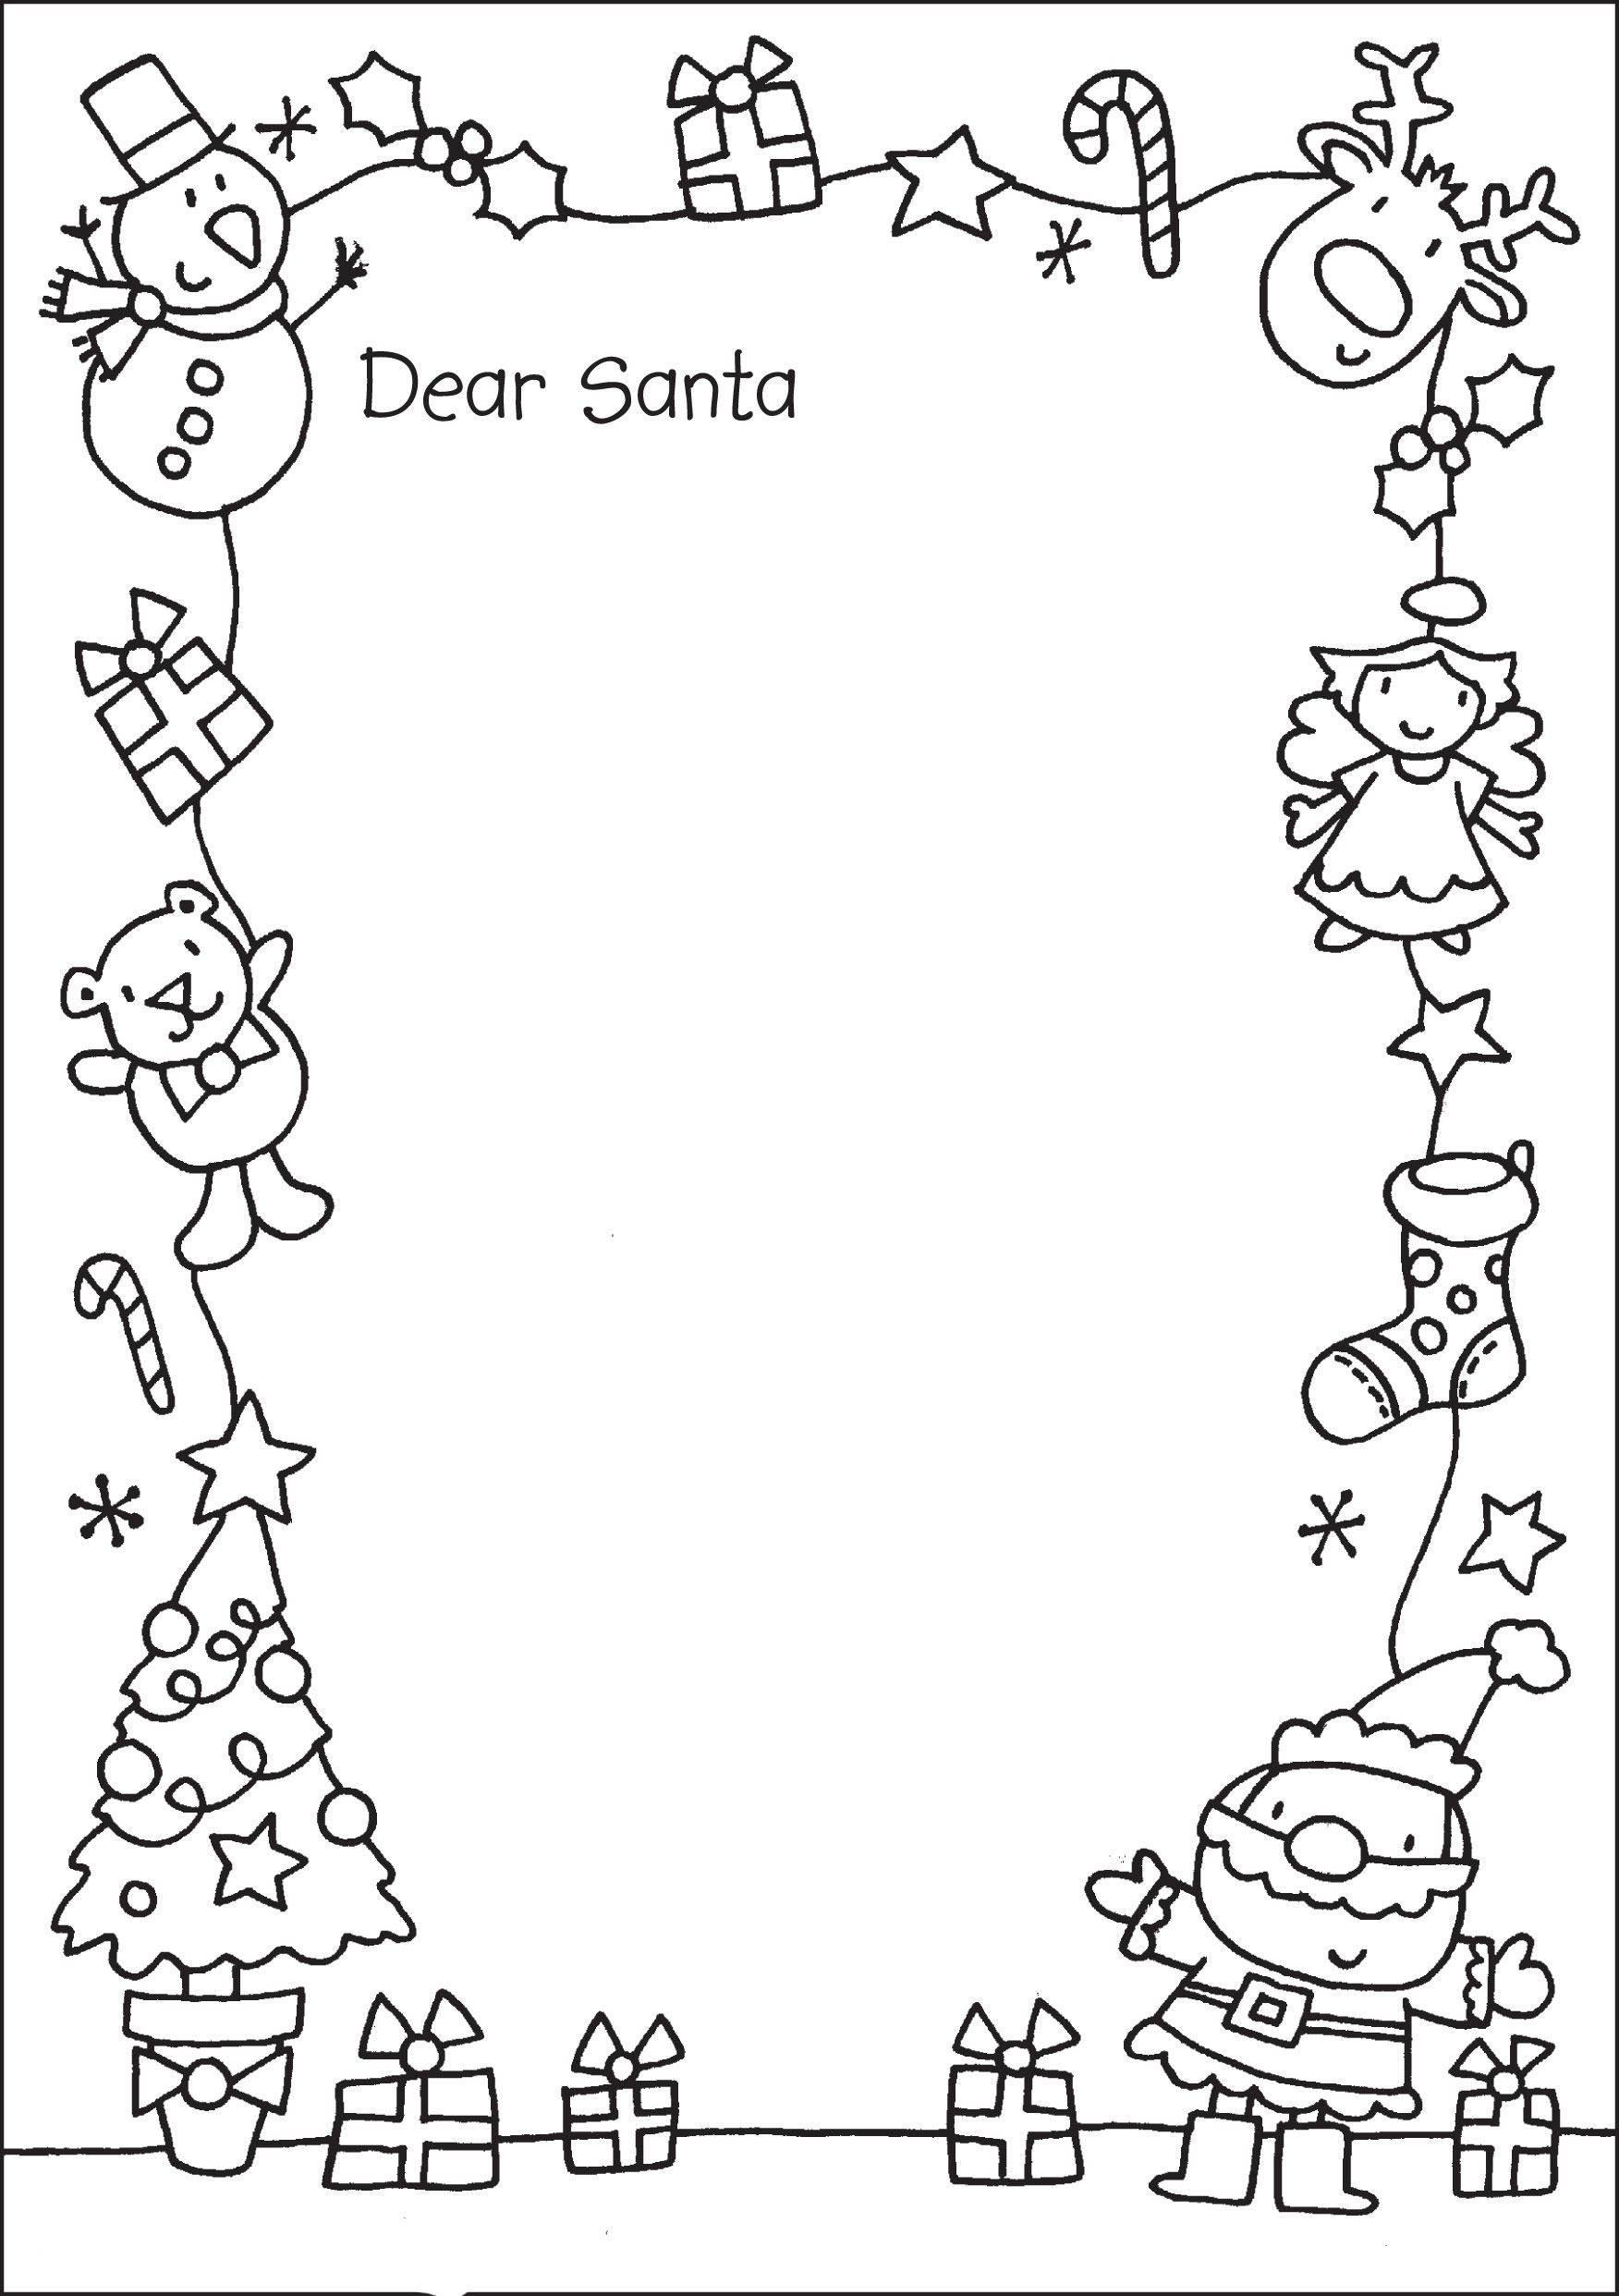 Te cuento un cuento navidad pinterest xmas navidad and craft letter to santa templates 16 free printable letters for kids to send to father christmas spiritdancerdesigns Gallery